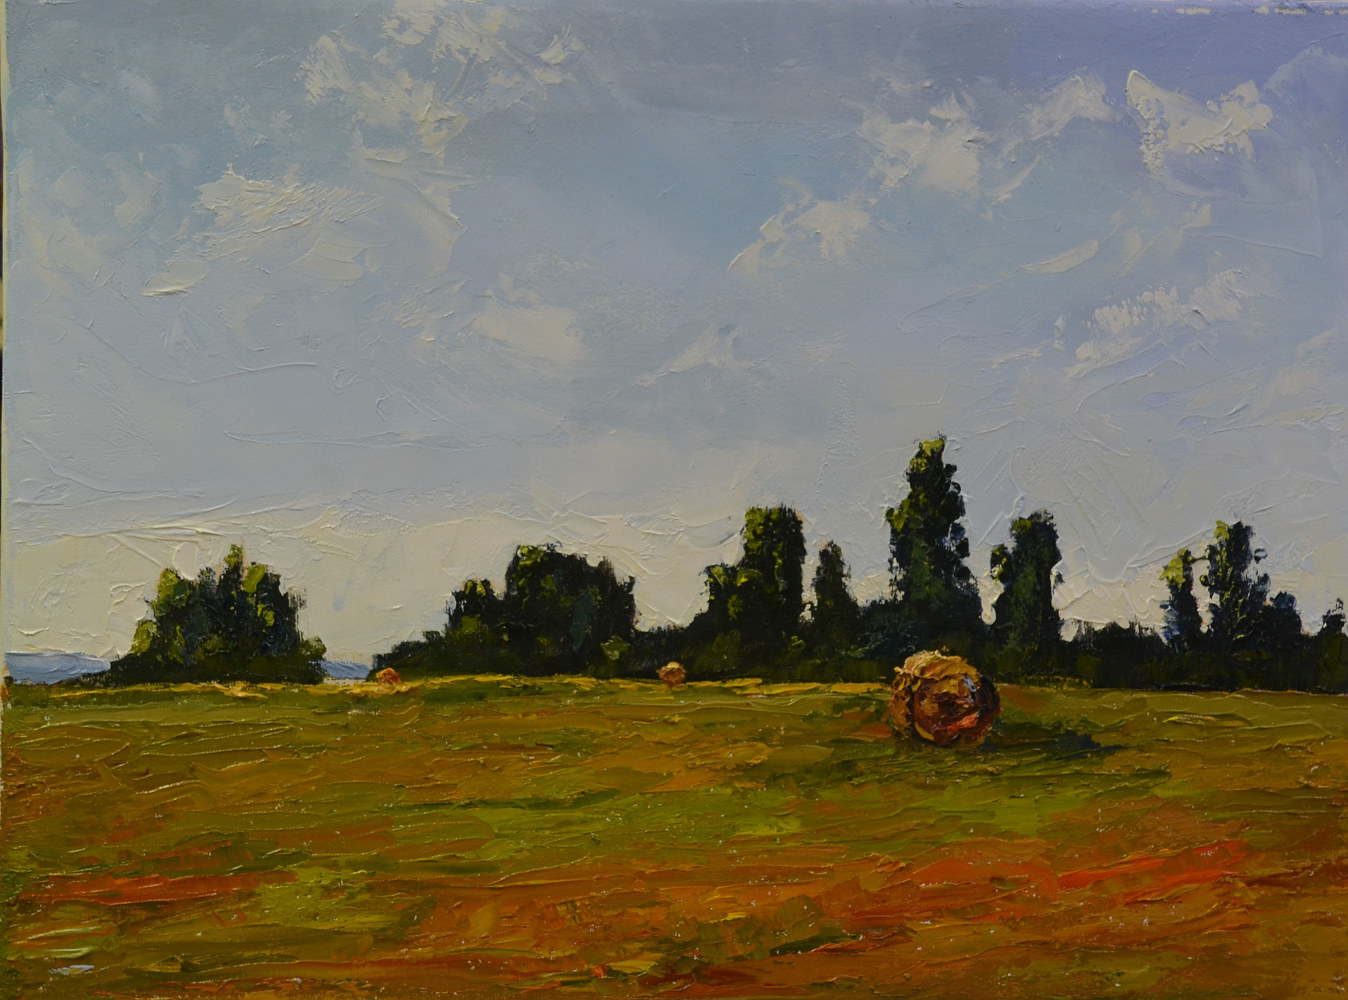 Out in the Field (ll) - 12 x 16, oil on canvas - 17-18 by Patricia Savoie